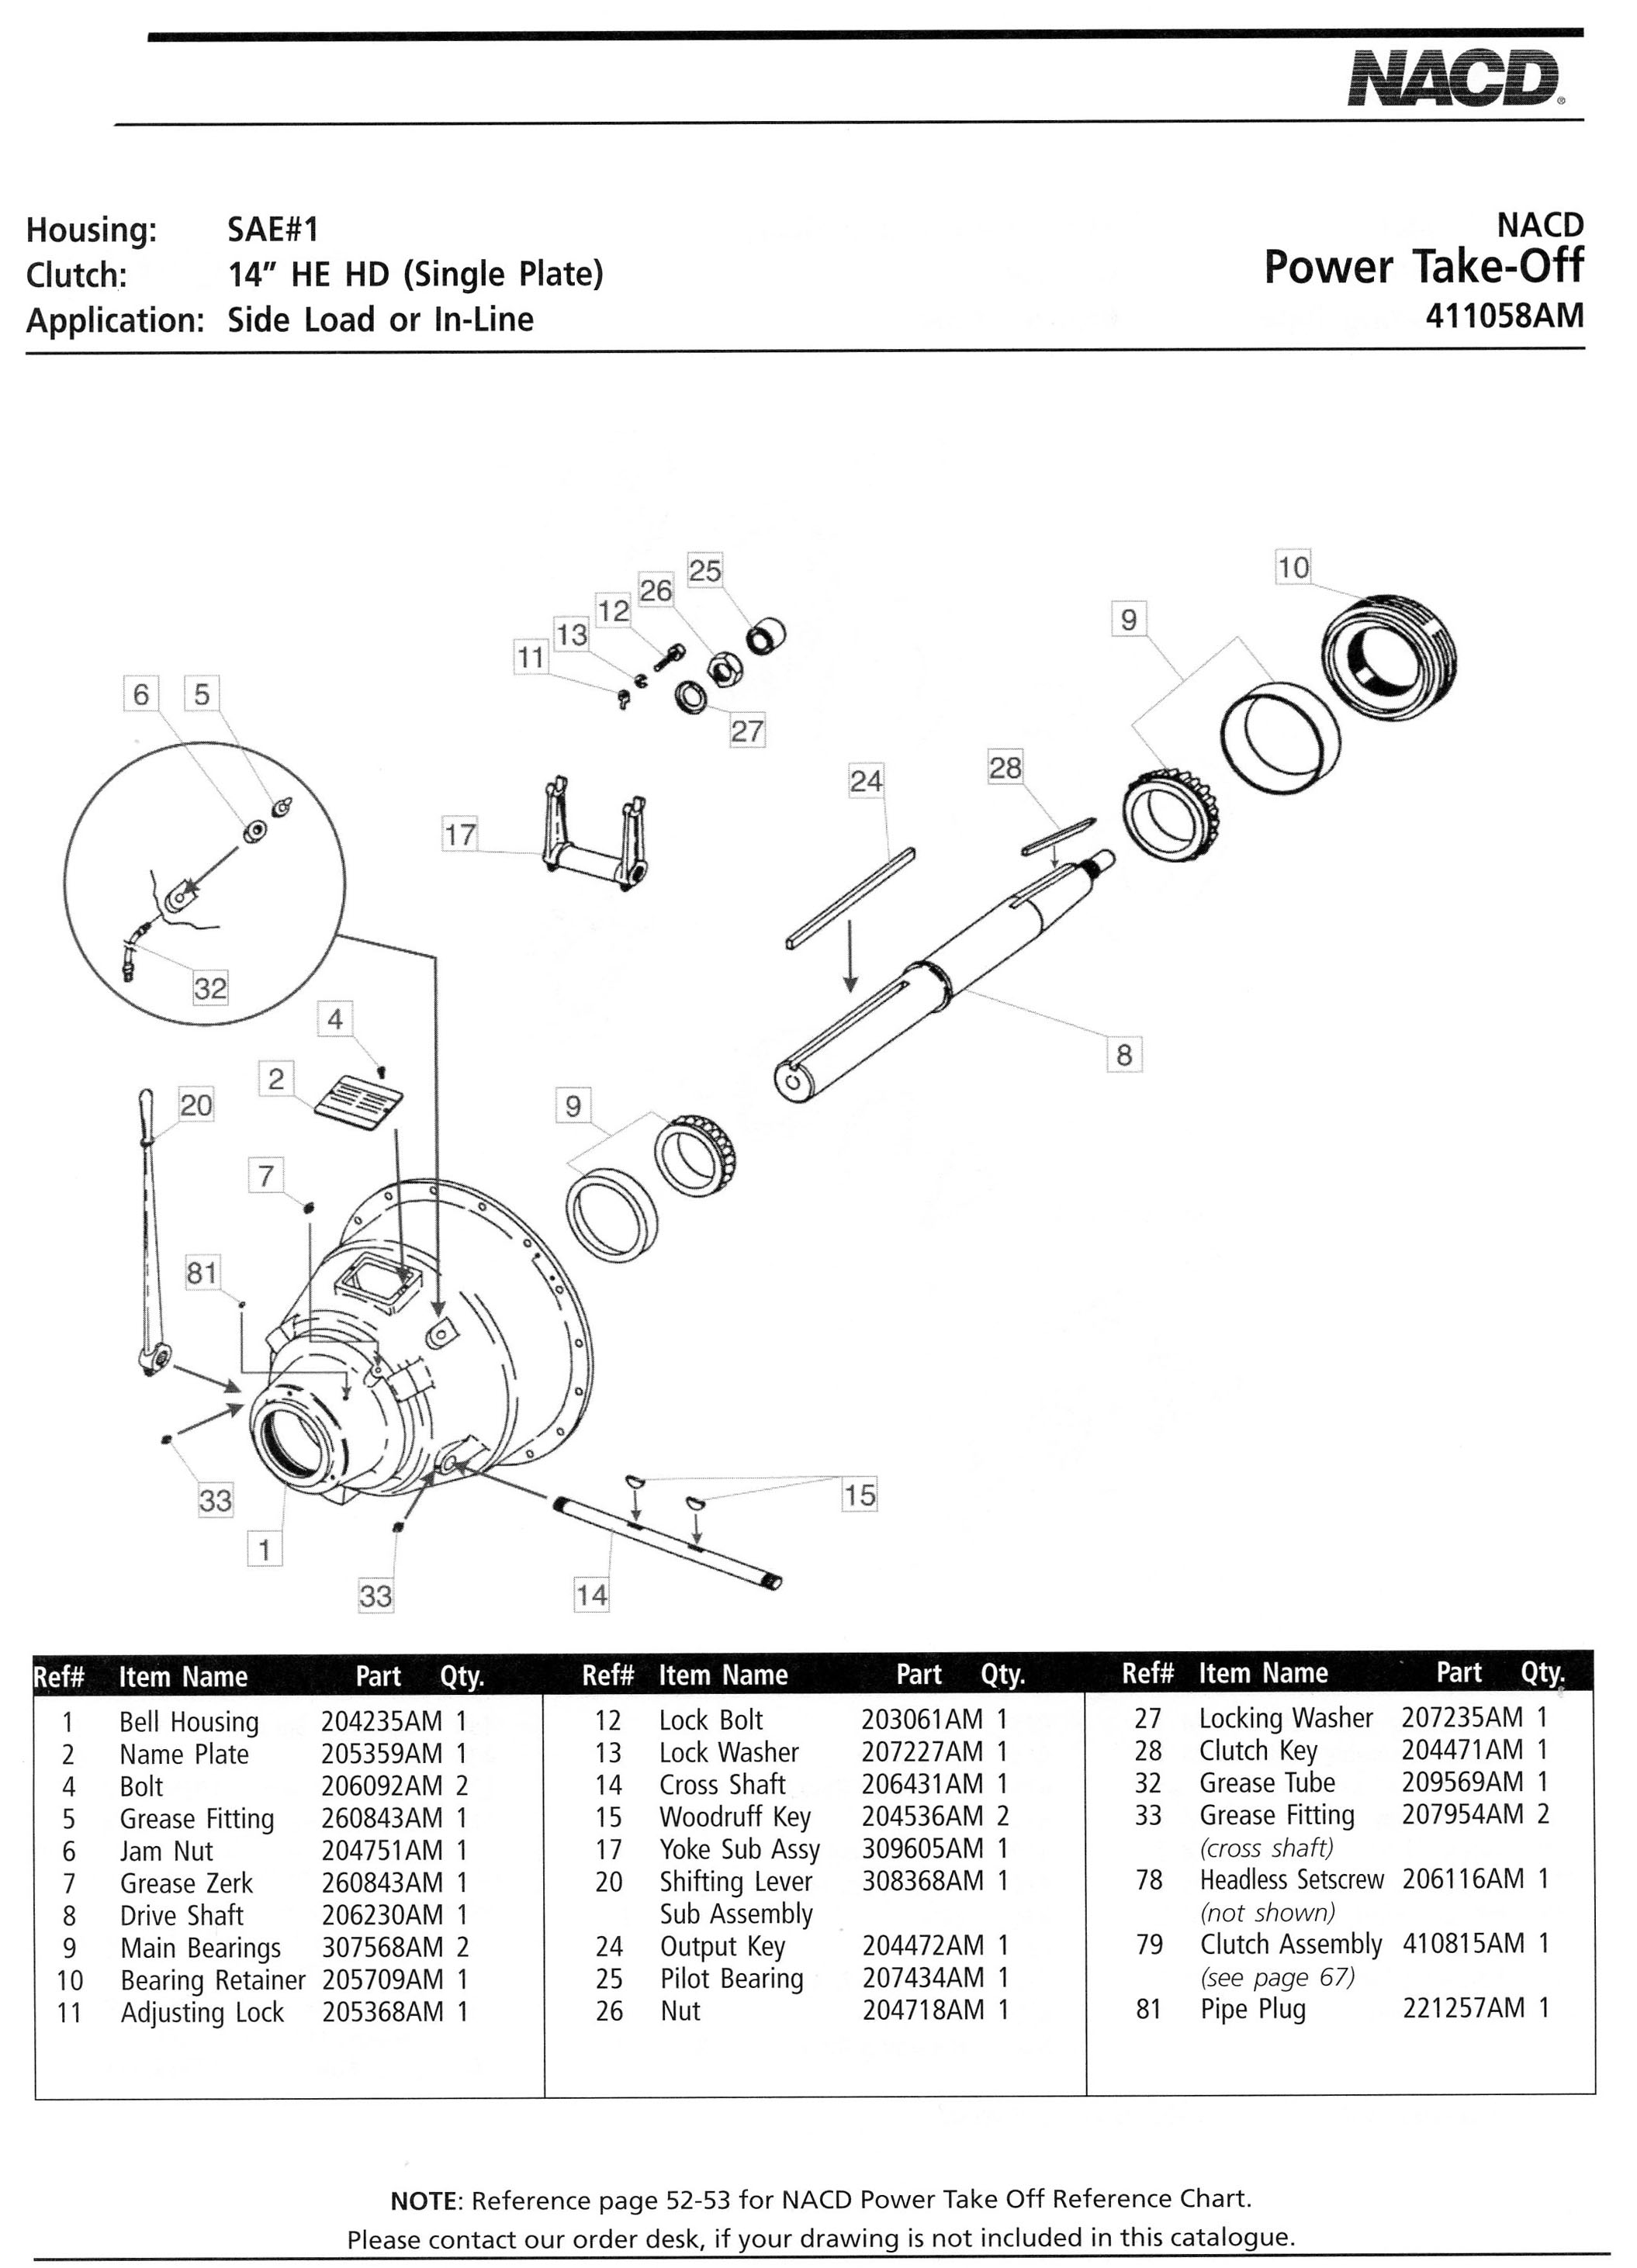 Ottawa Clutch Automotive Industrial Agricultural Clutches 1968 Ford Galaxie Engine Diagram 38 Nacd 14